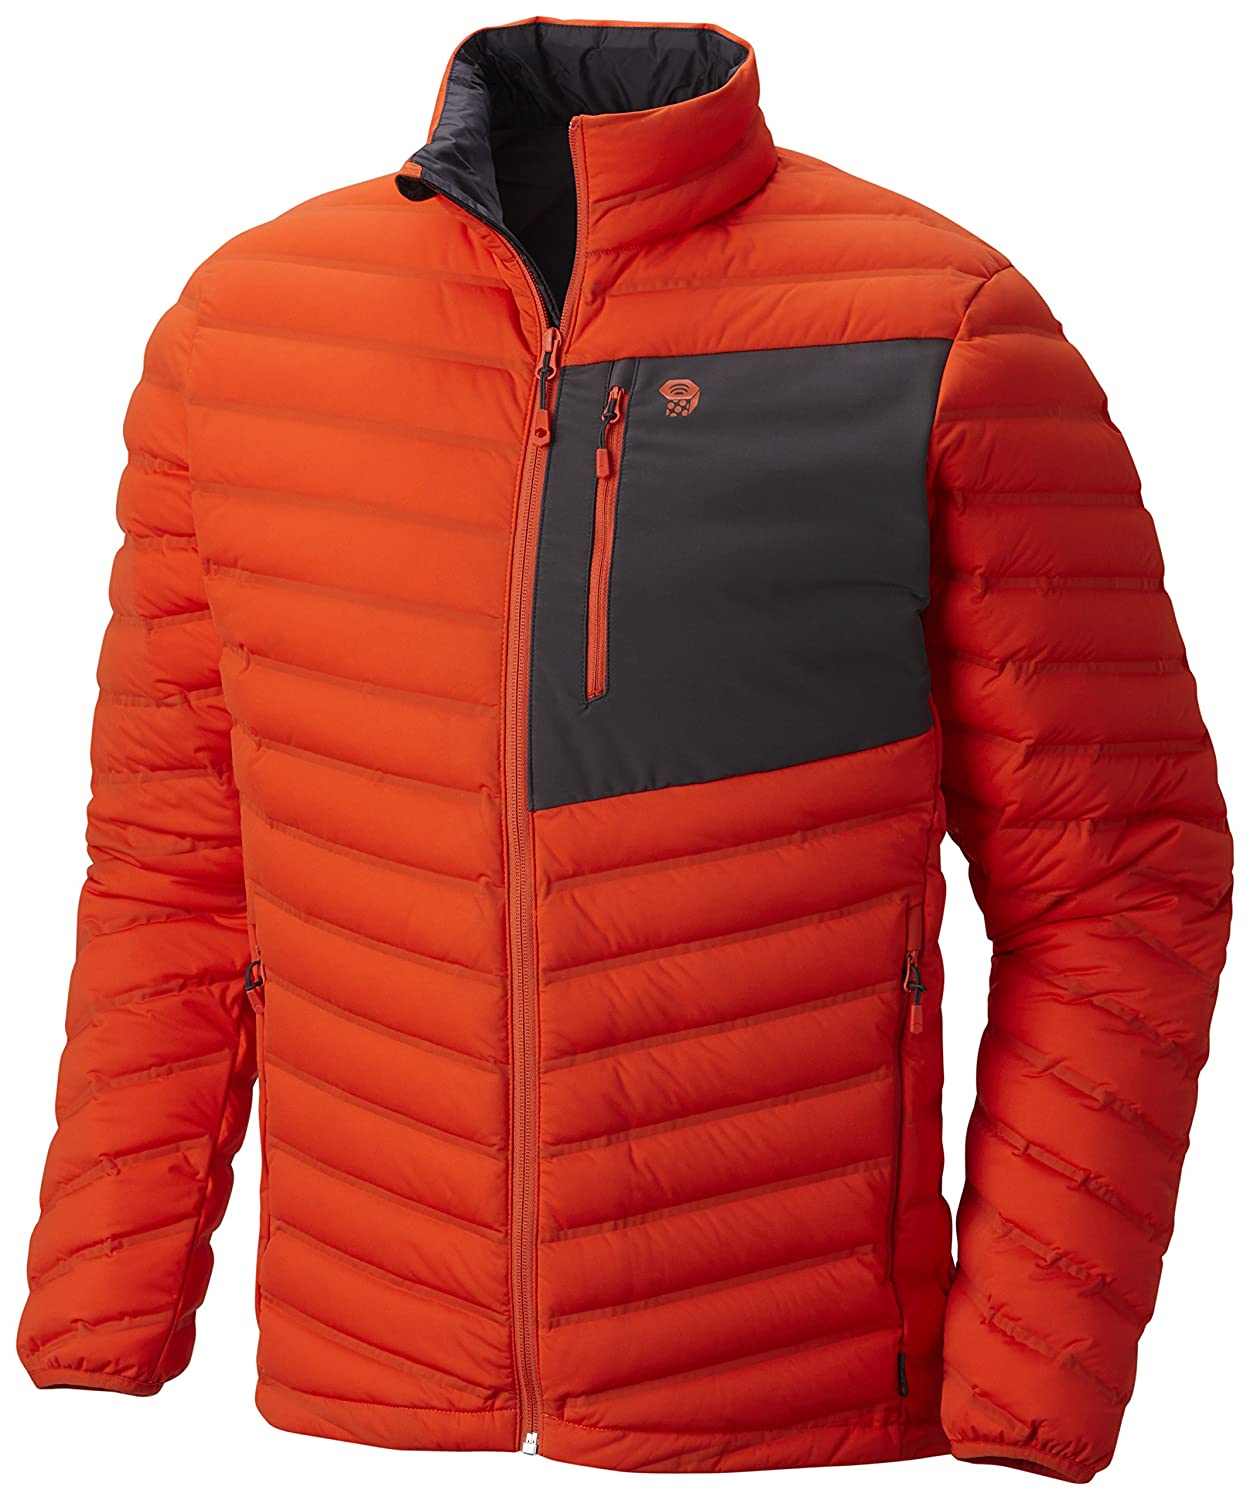 Orange XXL Mountain Hardwear Doudoune StretchDown veste